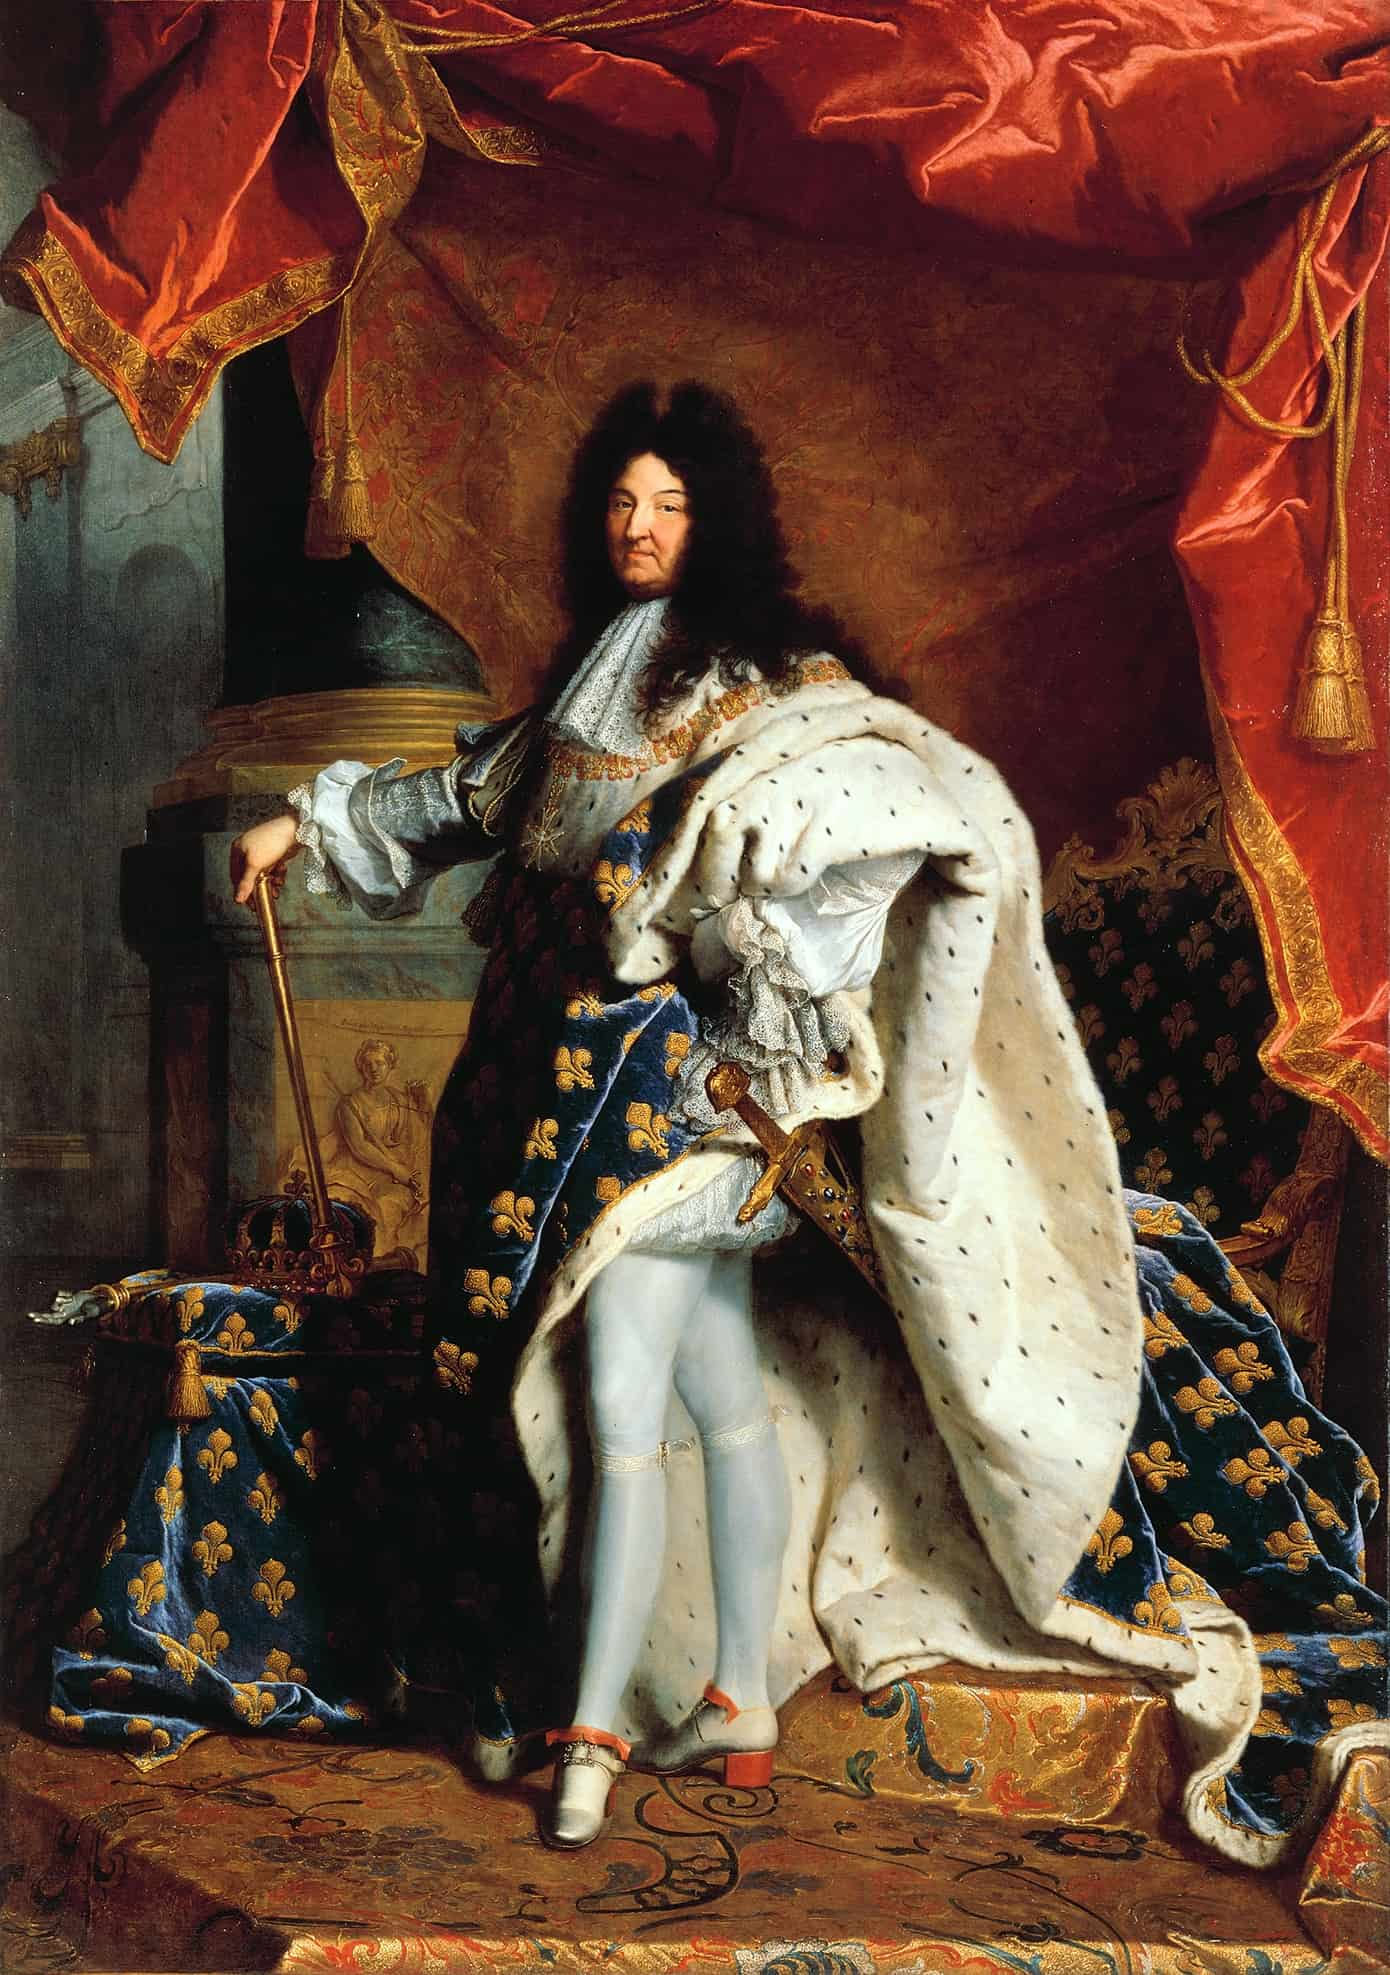 King Louis XIV, human face